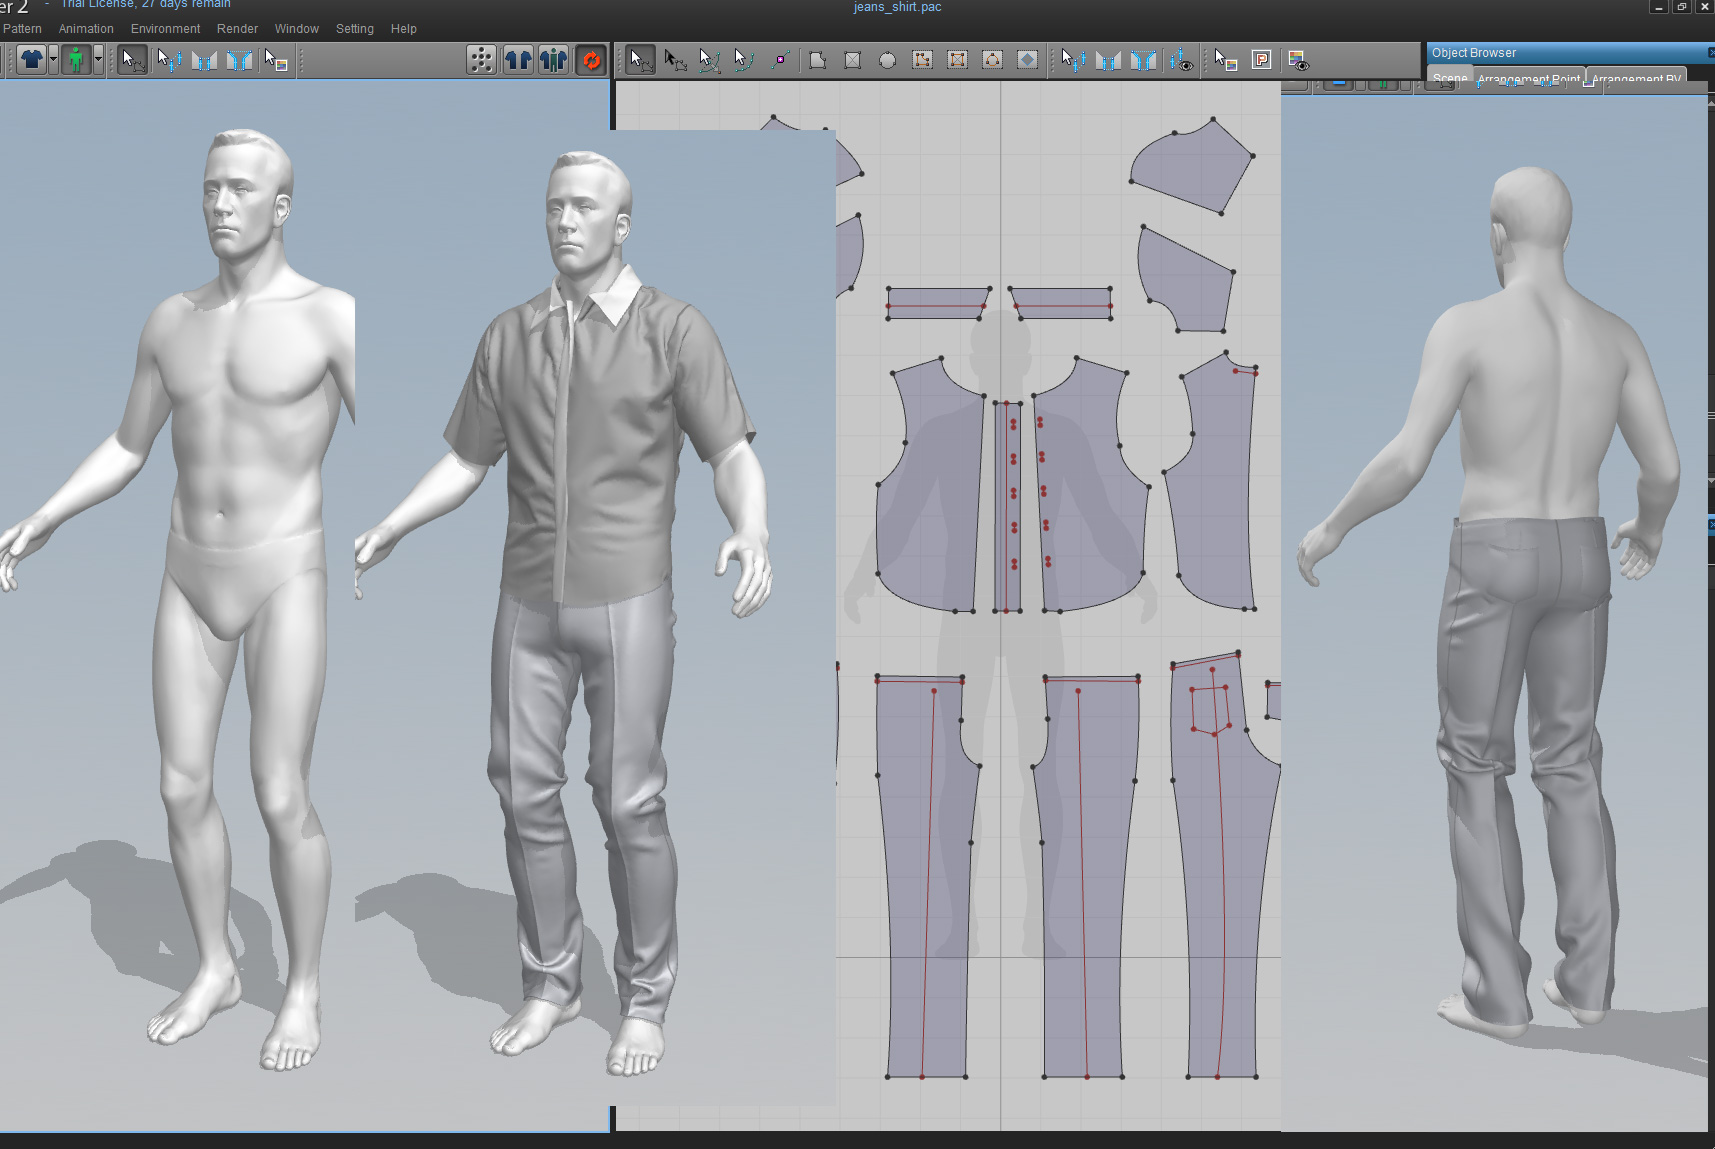 Marvelous designer right between cutting fabric and 3d for Virtual suit builder